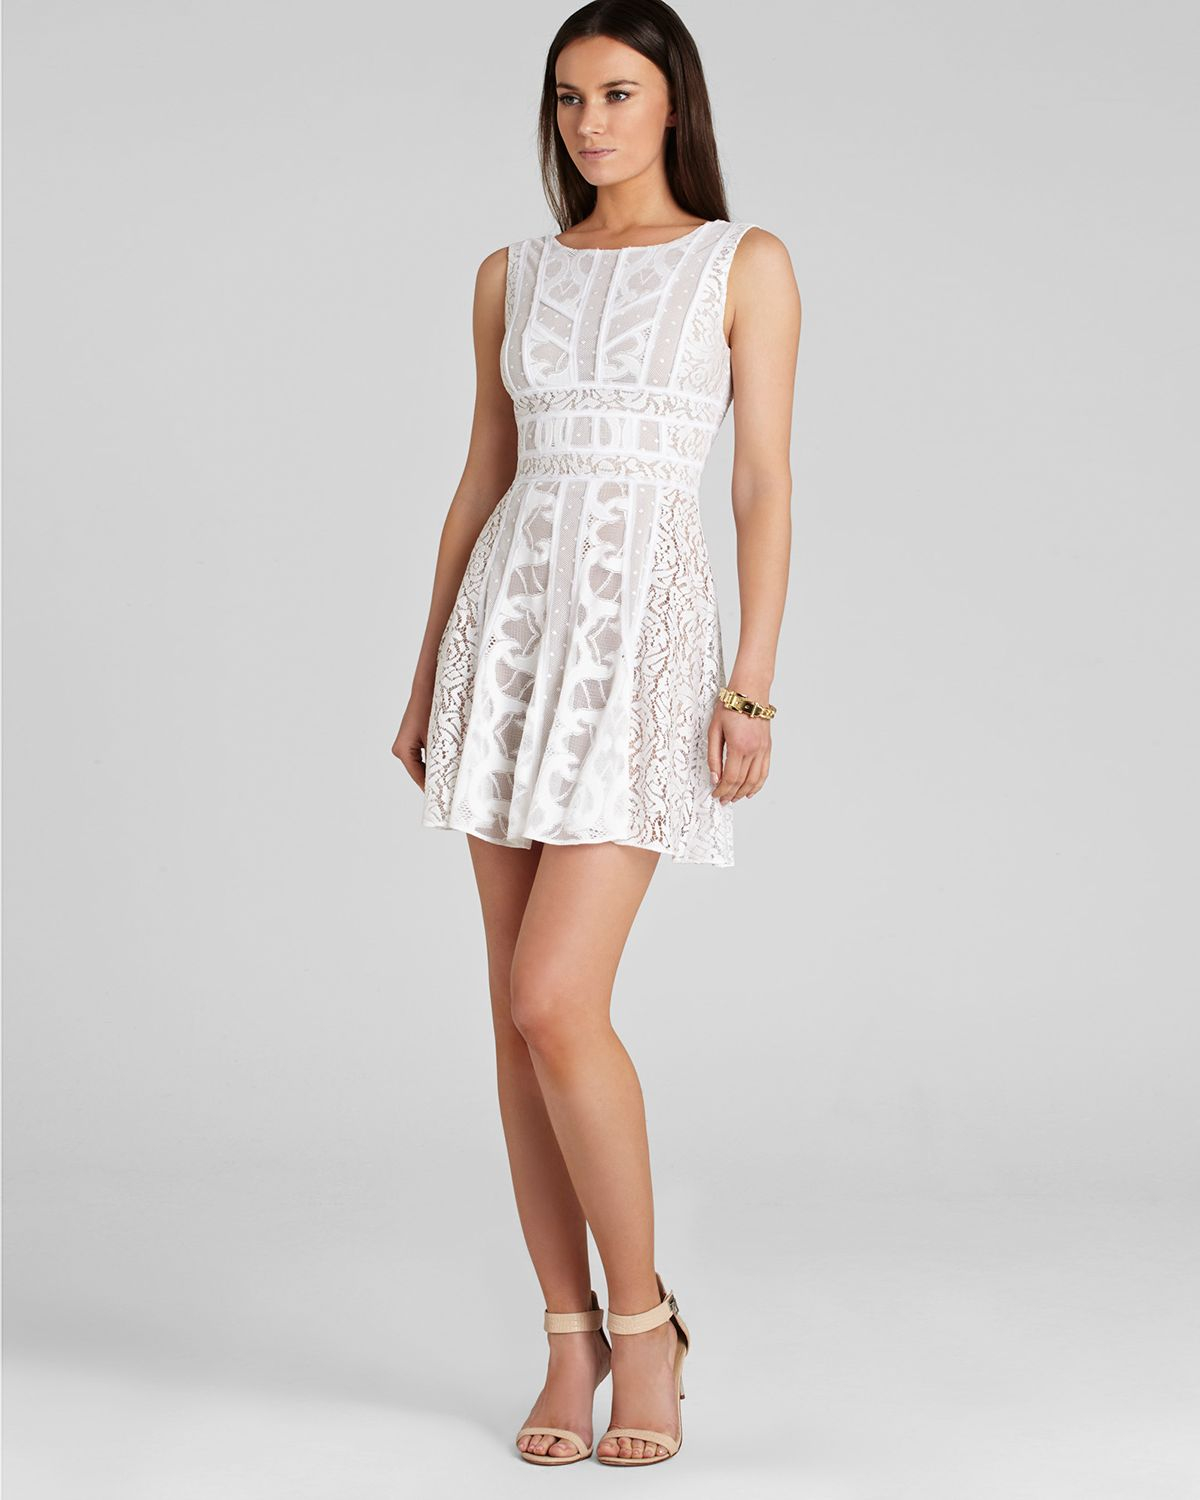 Lyst - Bcbgmaxazria Kelley Sleeveless Dress with Lace ...